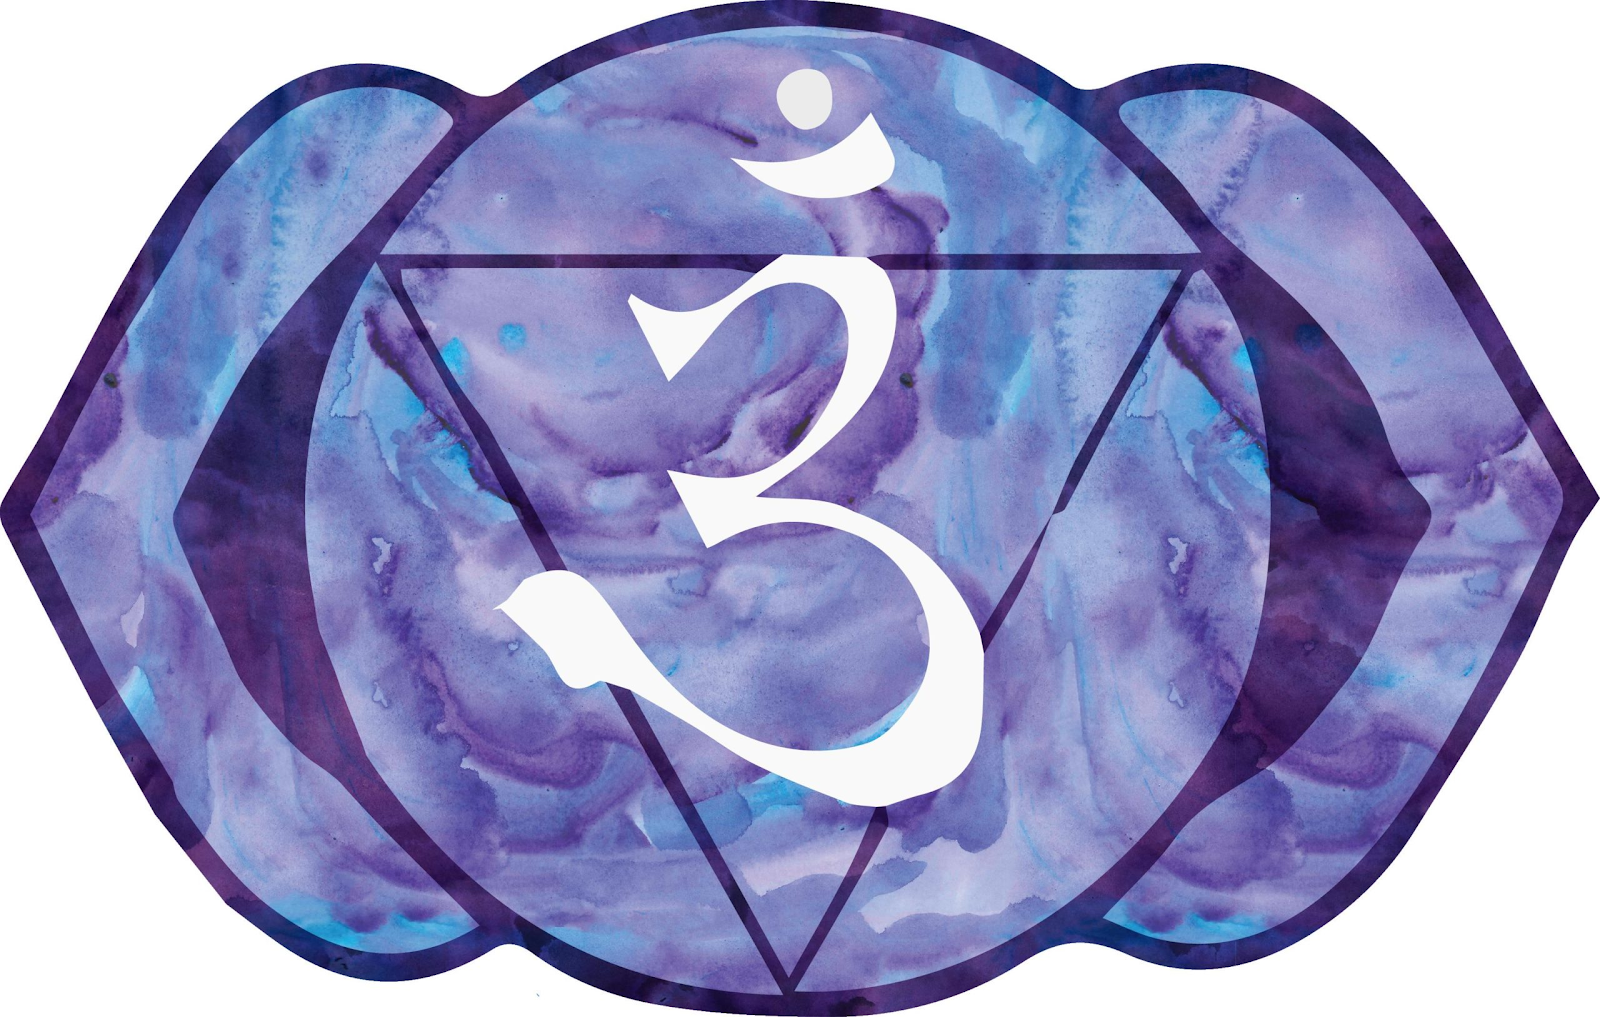 The third eye chakra symbol, an indigo color with an upside down triangle and a three in the middle.